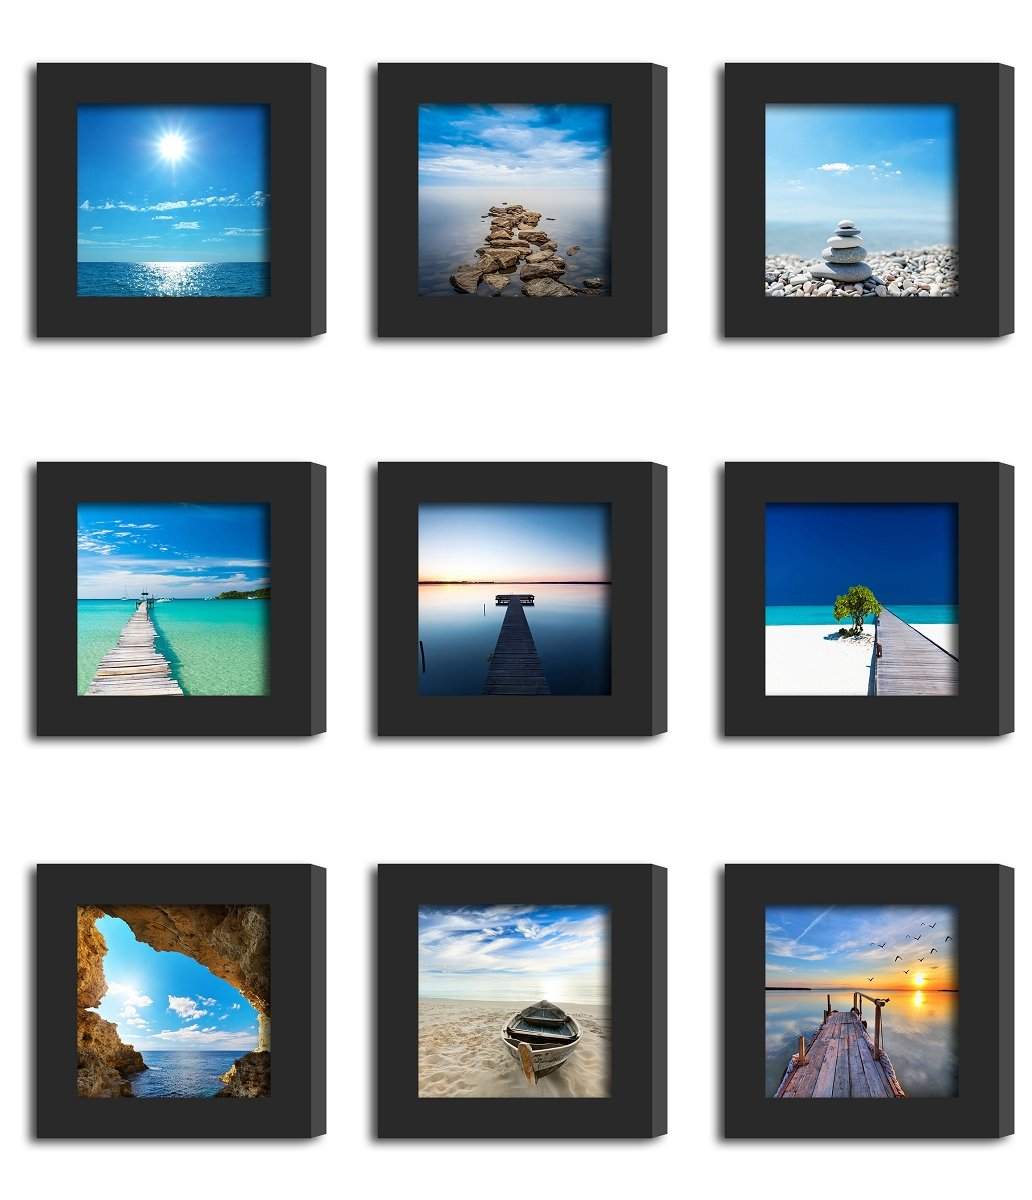 9Pcs 4x4 Real Glass Wood Frame Black Fit Family Image Pictures Photo (Window 3.6 x 3.6 inch) Desktop Stand or Wall Hang Family Combine Square Blue Beach Jetty Pier Landscape Decoration (1-9)